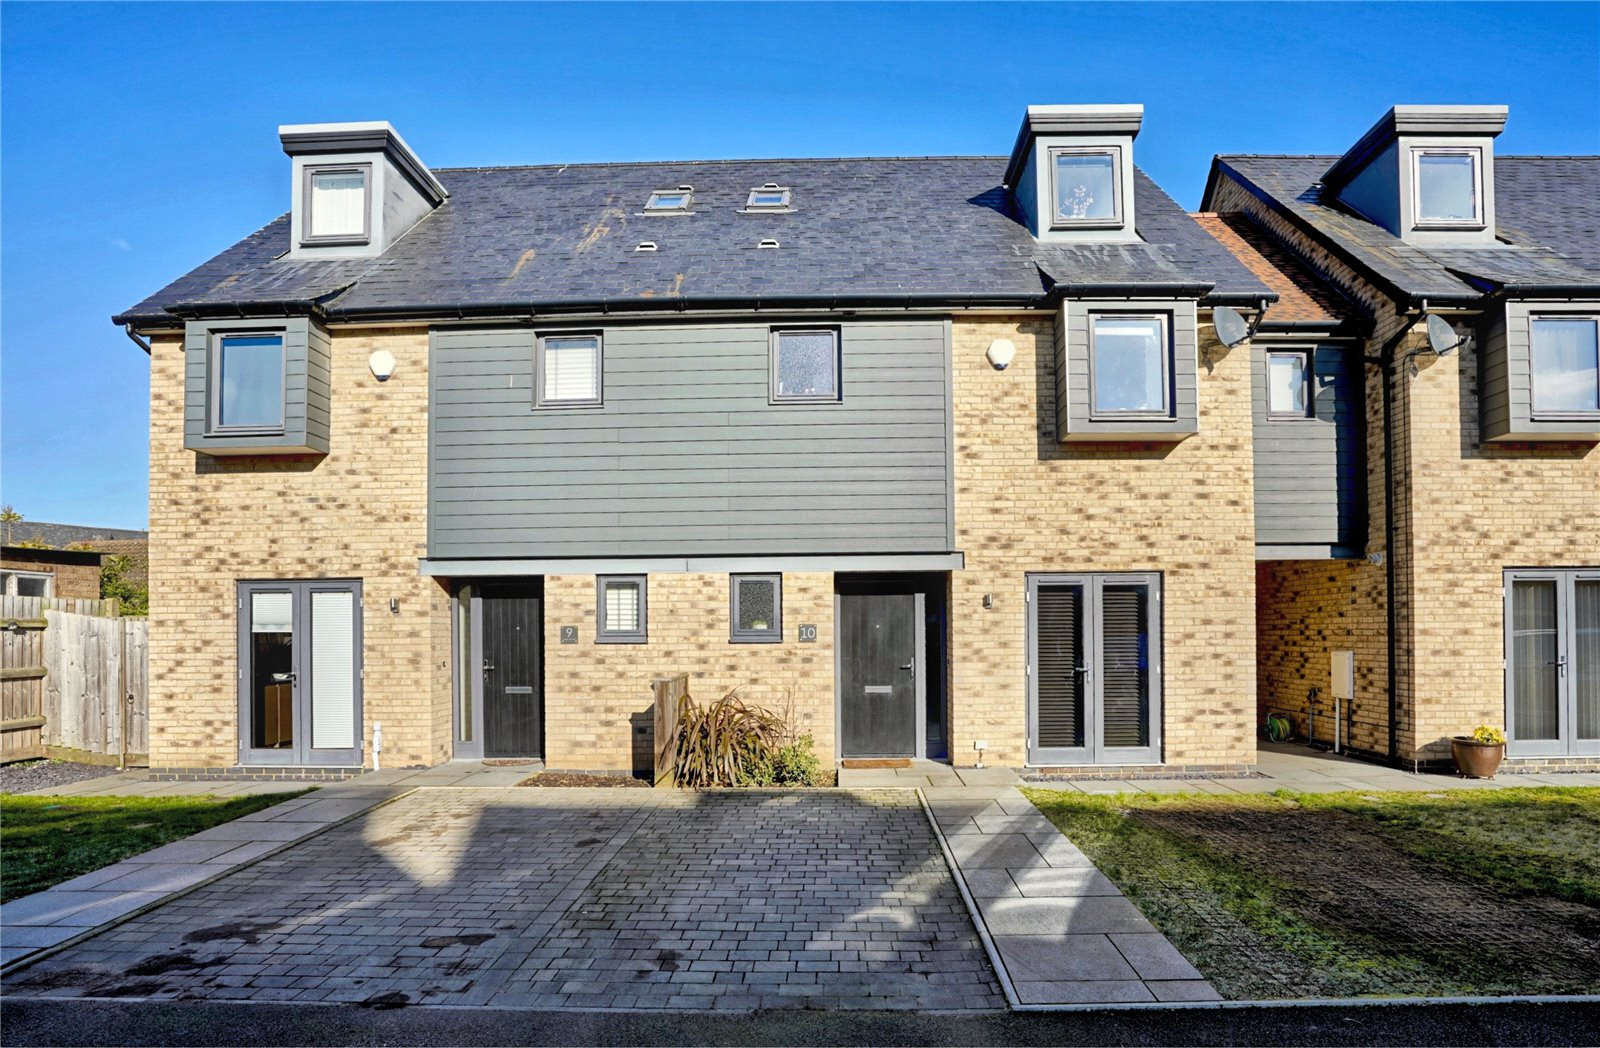 3 bed house for sale in St. Ives, PE27 5DN - Property Image 1